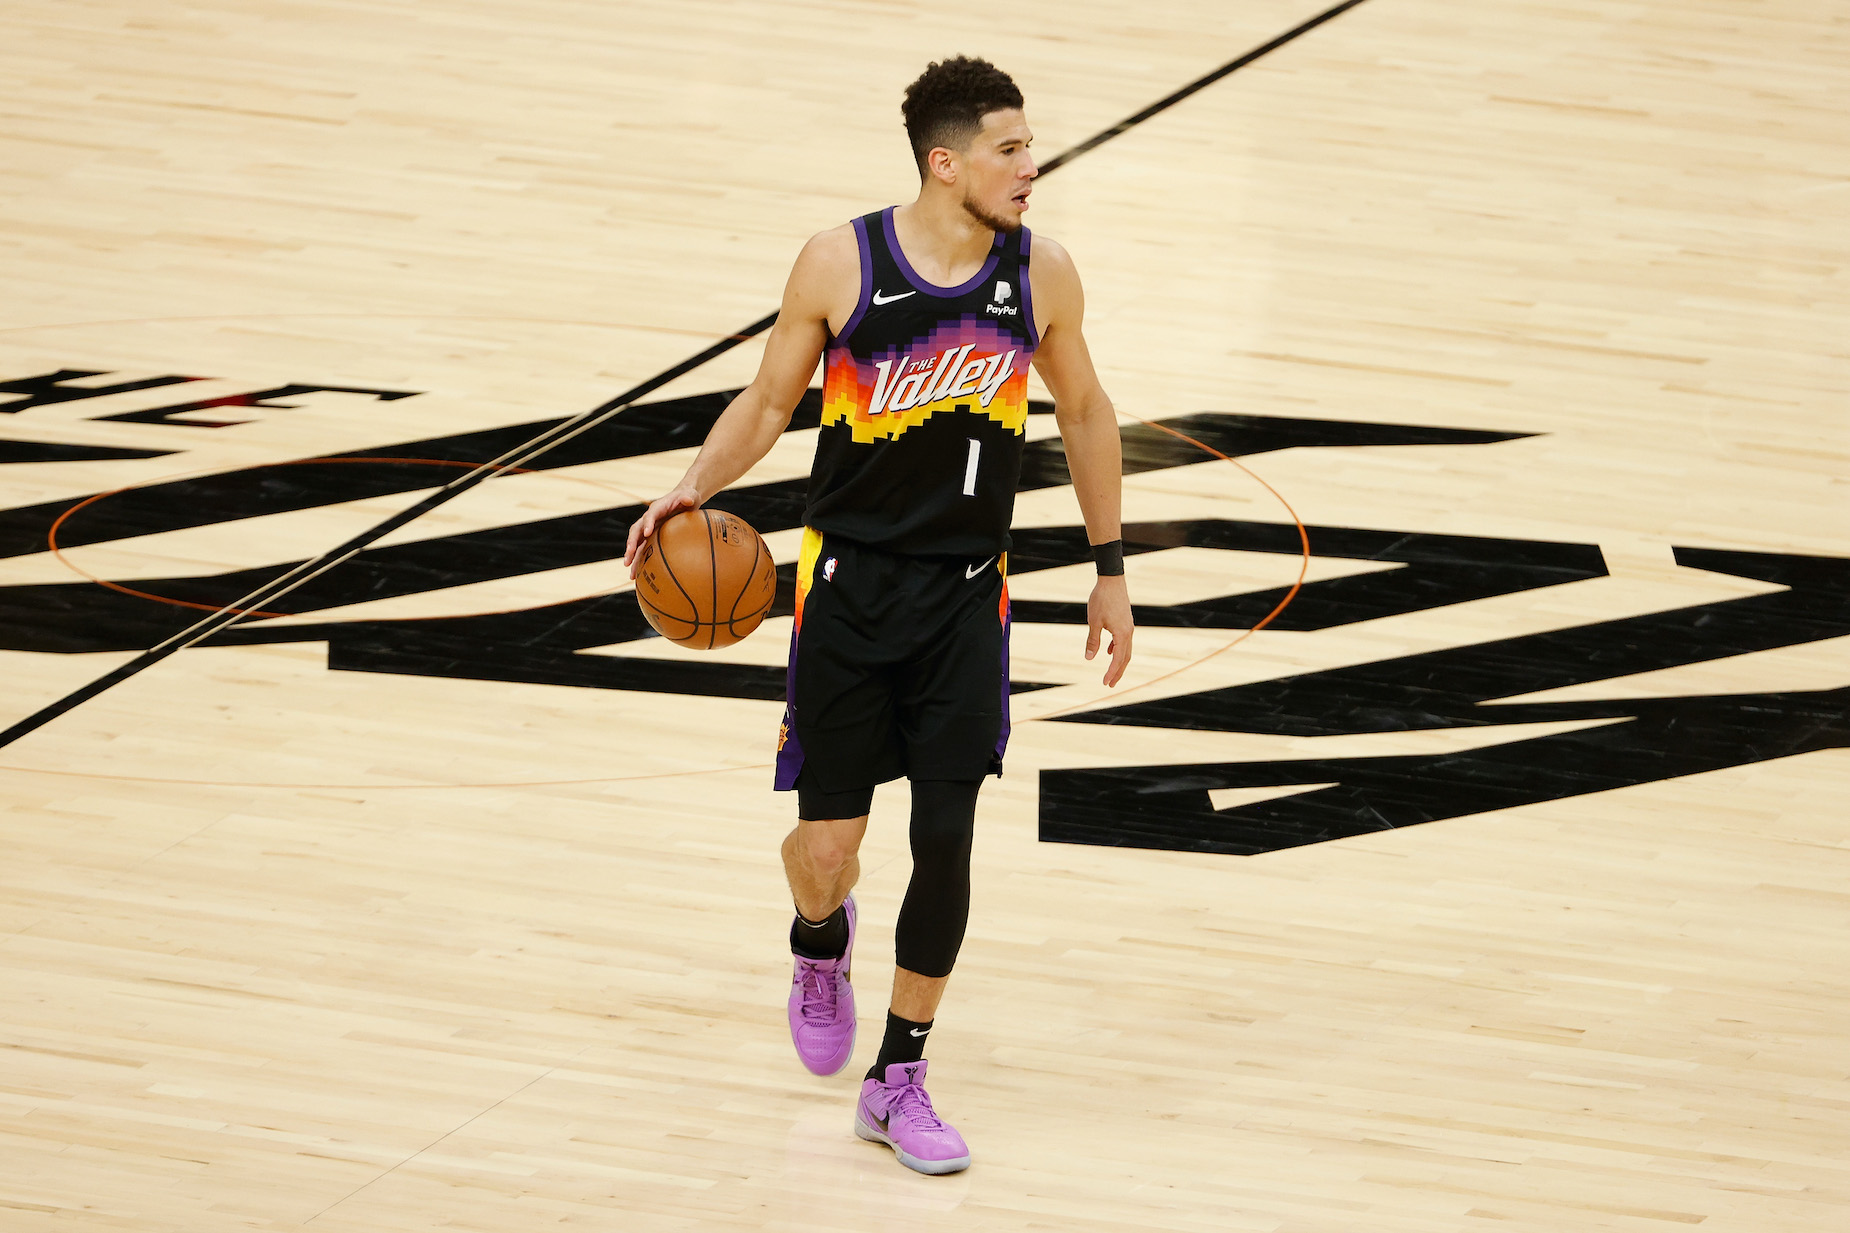 Devin Booker Once Said That His 'Favorite  Accomplishment' Was a $2.5 Million Commitment Rather Than Anything He'd Done on the Basketball Court